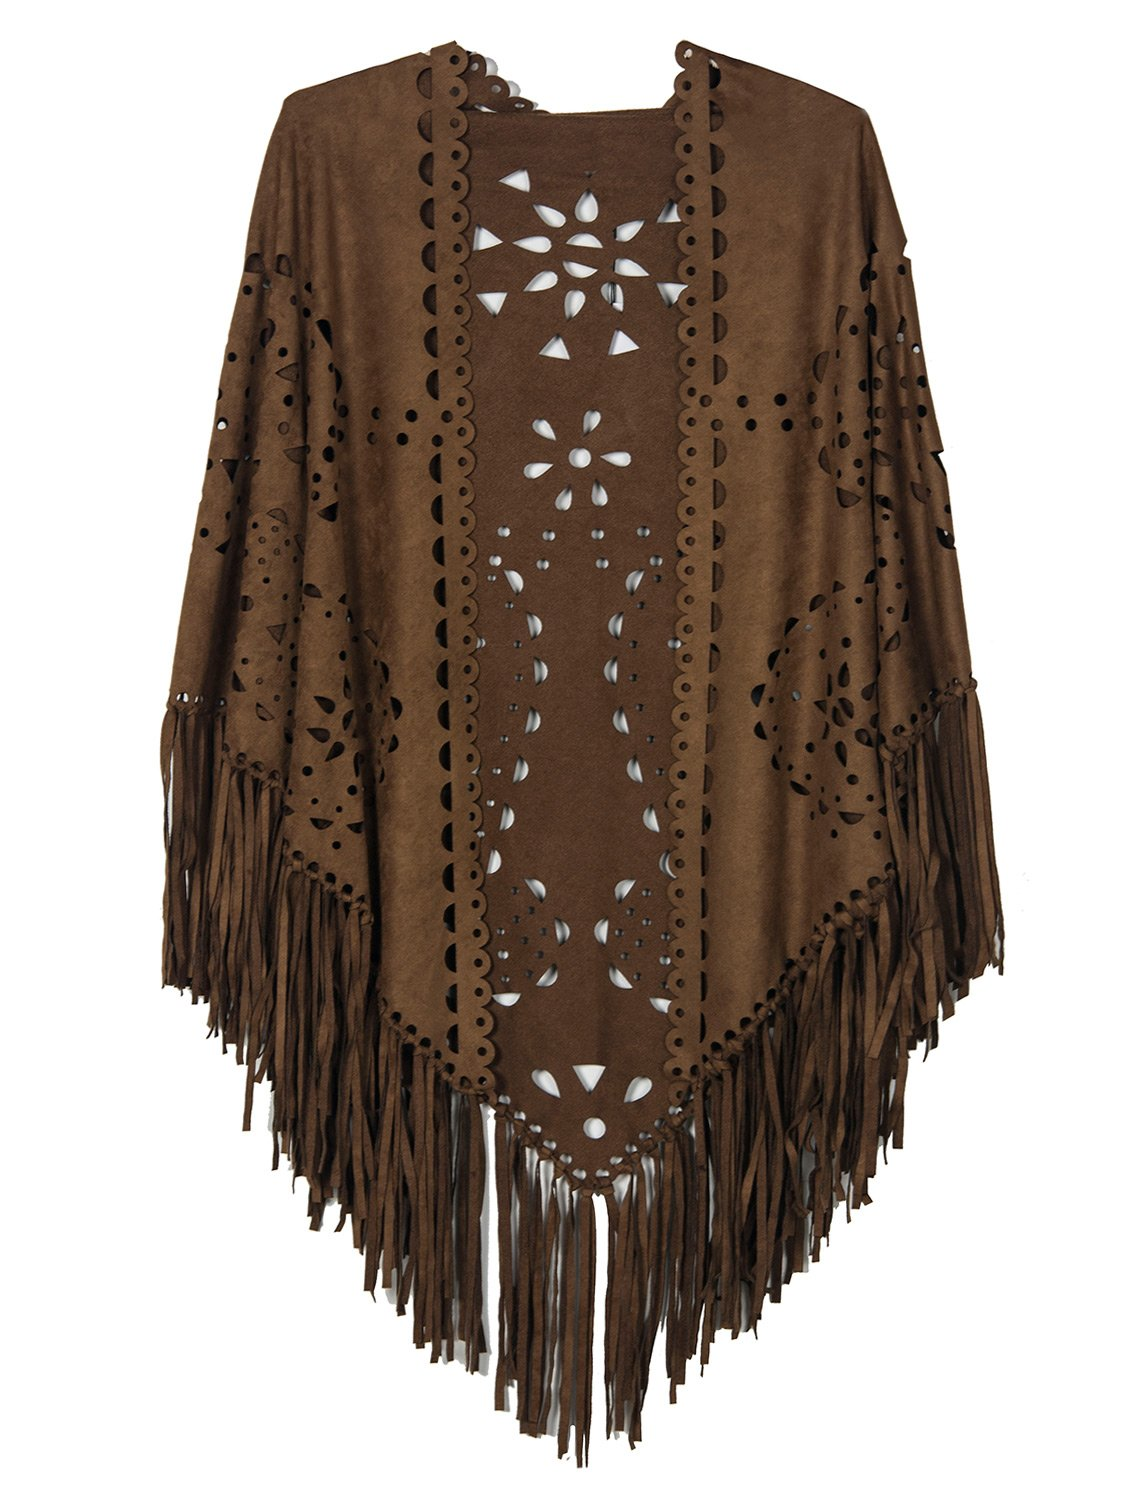 CHOiES record your inspired fashion Women's Choies Women's Coffee Suedette Laser Cut Fringed Cape Coat Shawl Wrap Scarf